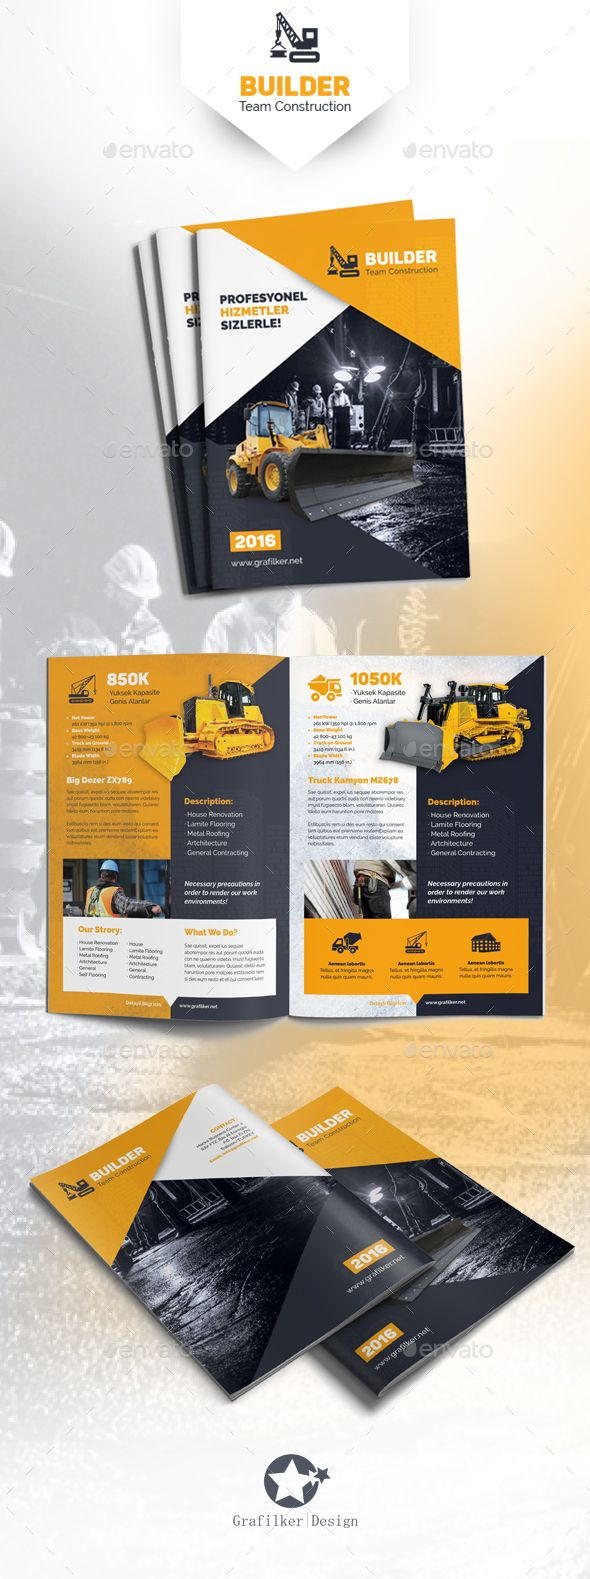 25 best ideas about construction design on pinterest for Construction brochure template